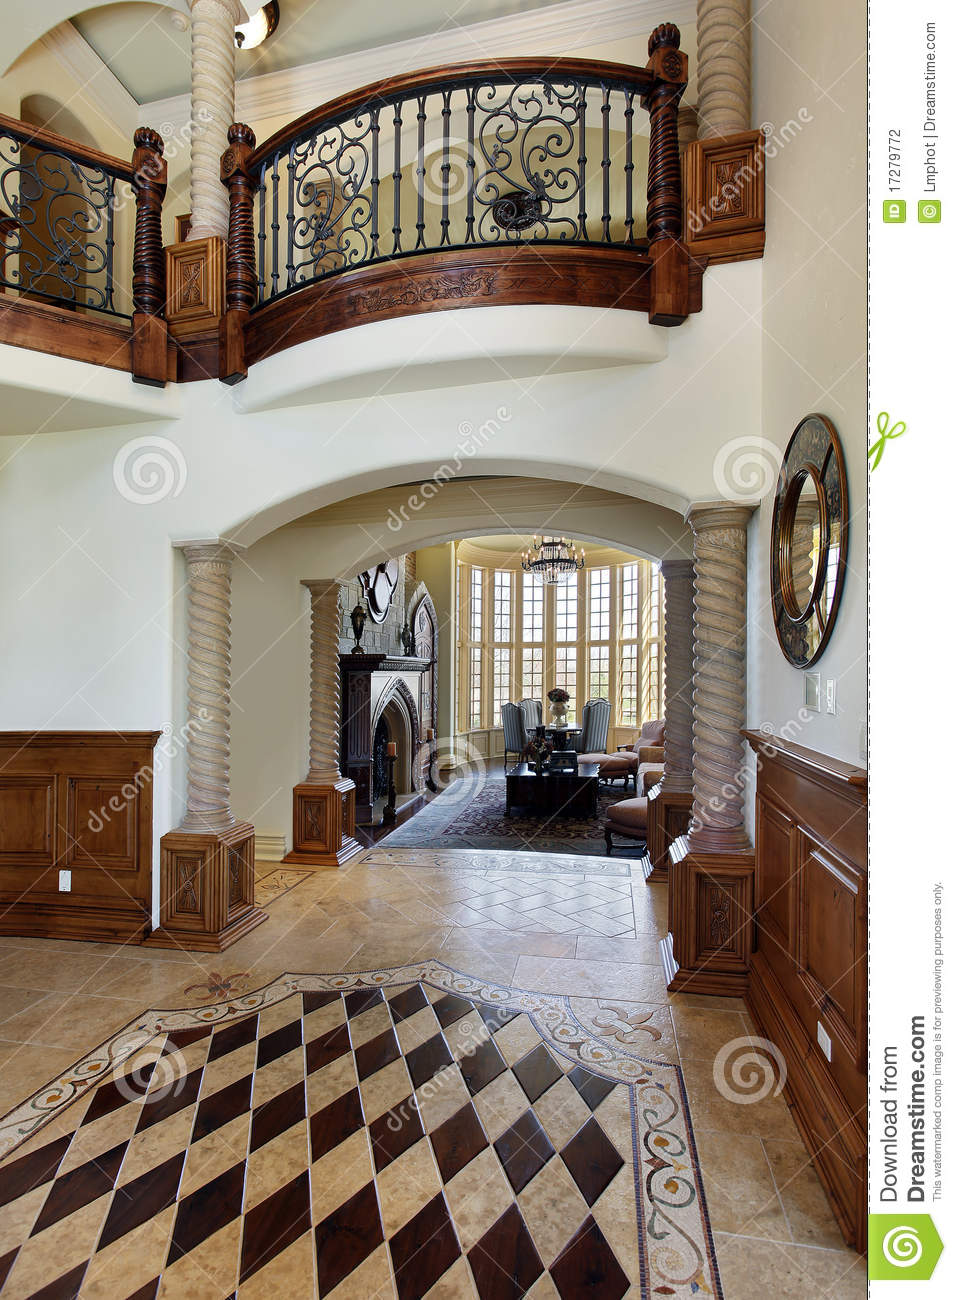 House Foyer Xl : Foyer with floor design stock photo image of room luxury